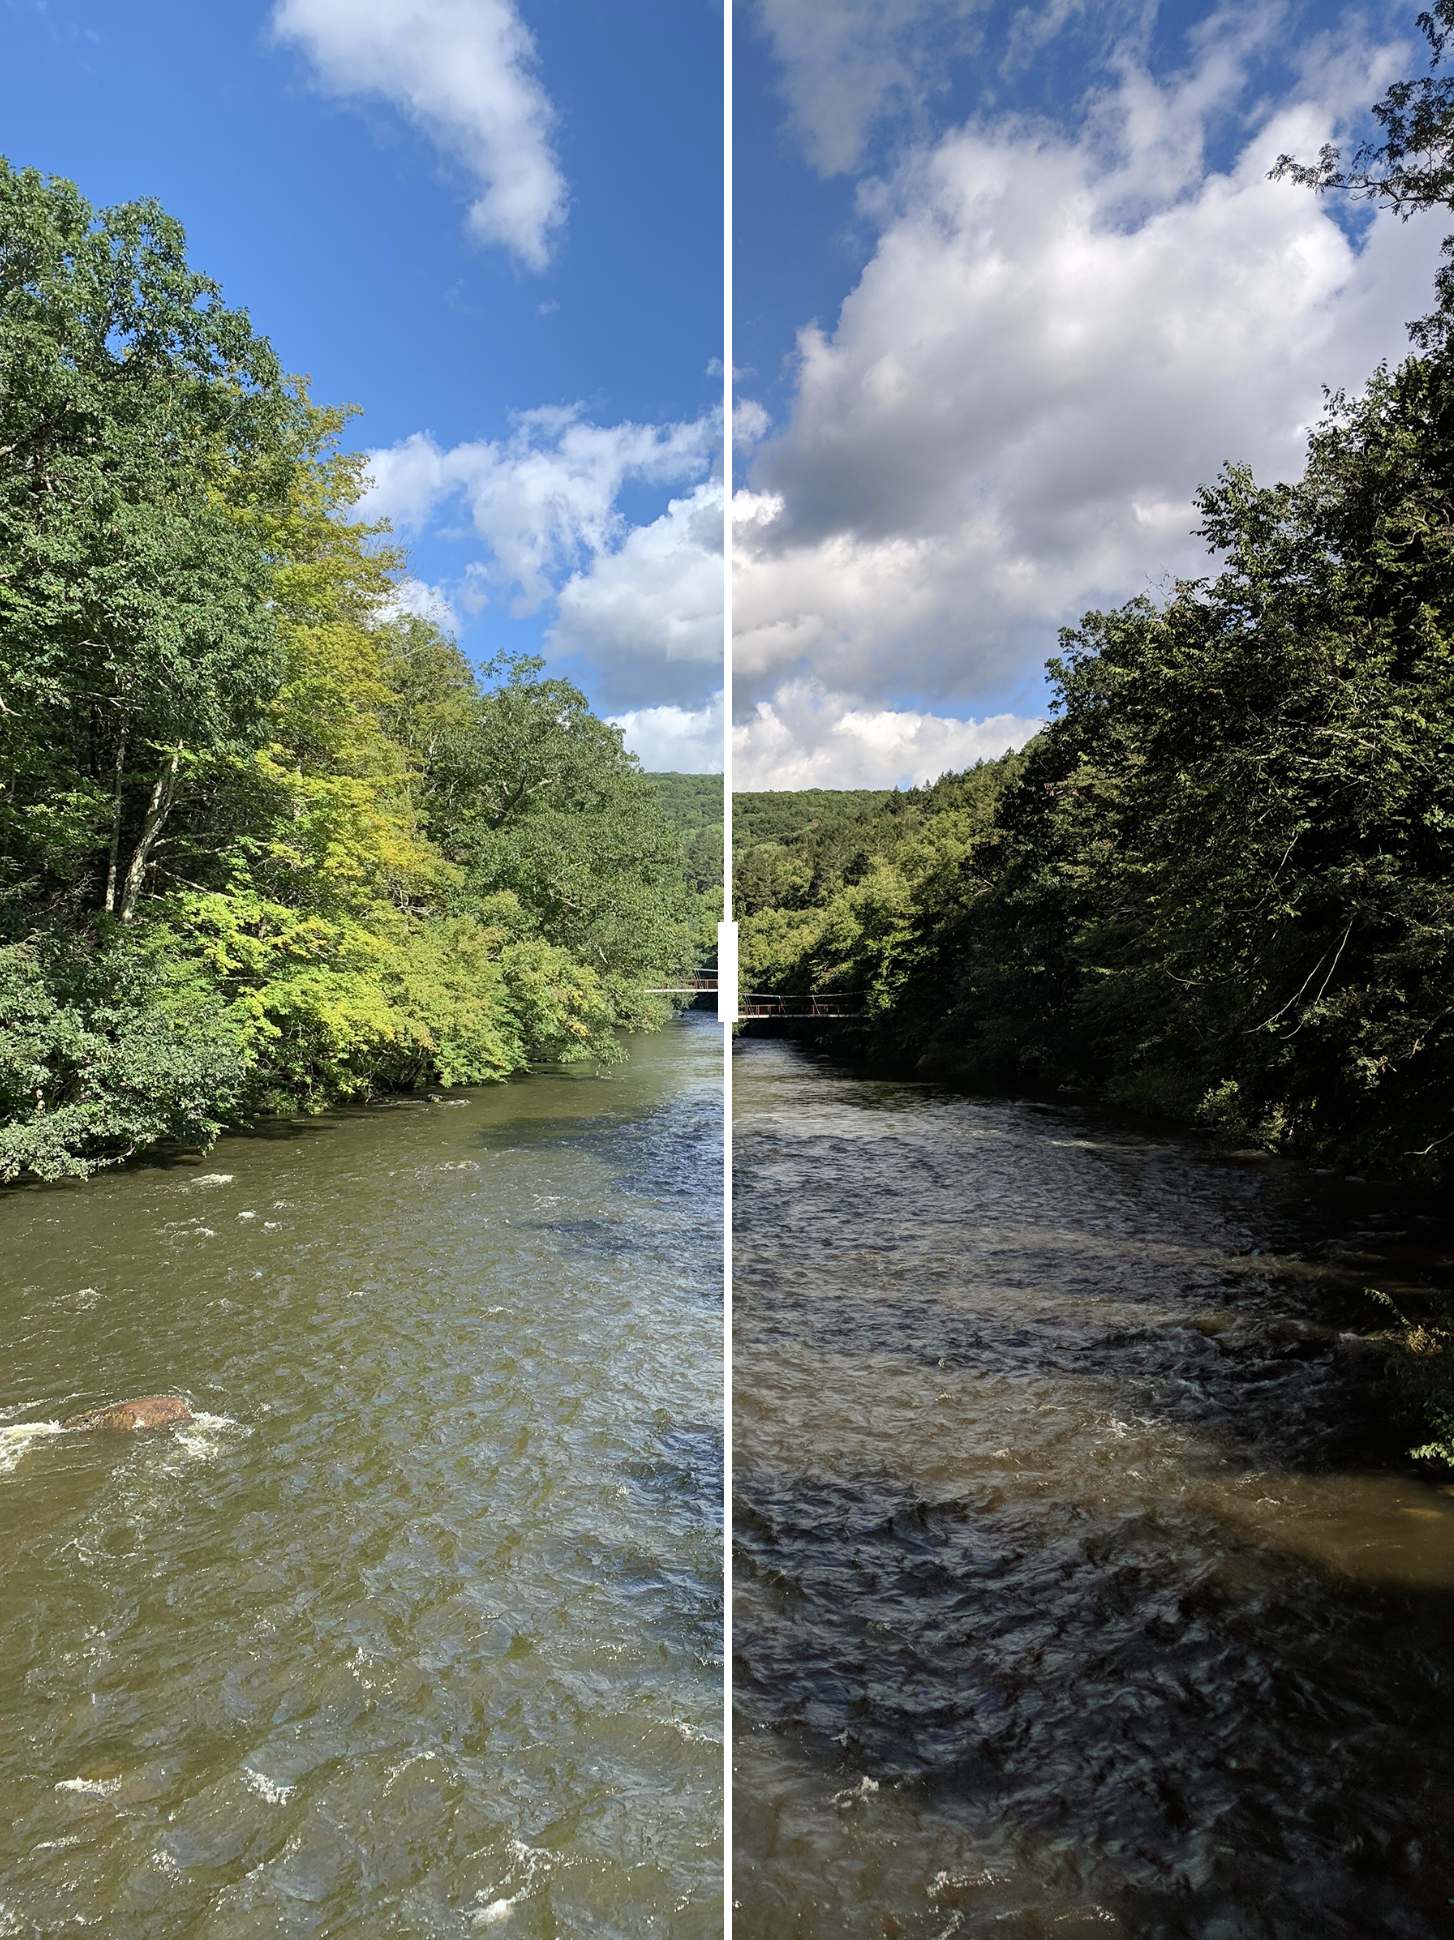 Camara iPhone Xs Vs Google Pixel 2